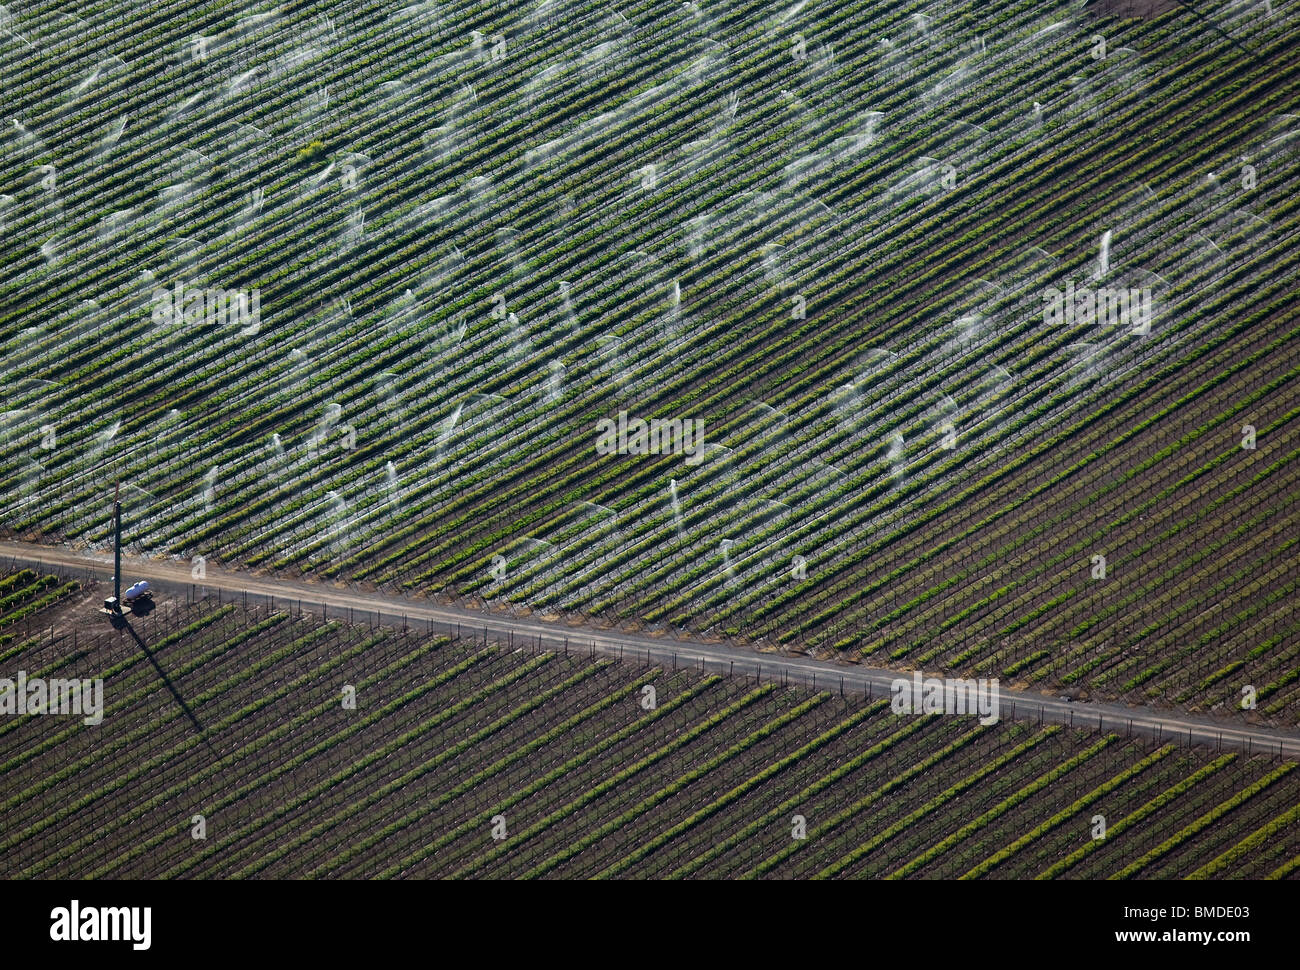 aerial view above sprinkler irrigation central valley California - Stock Image